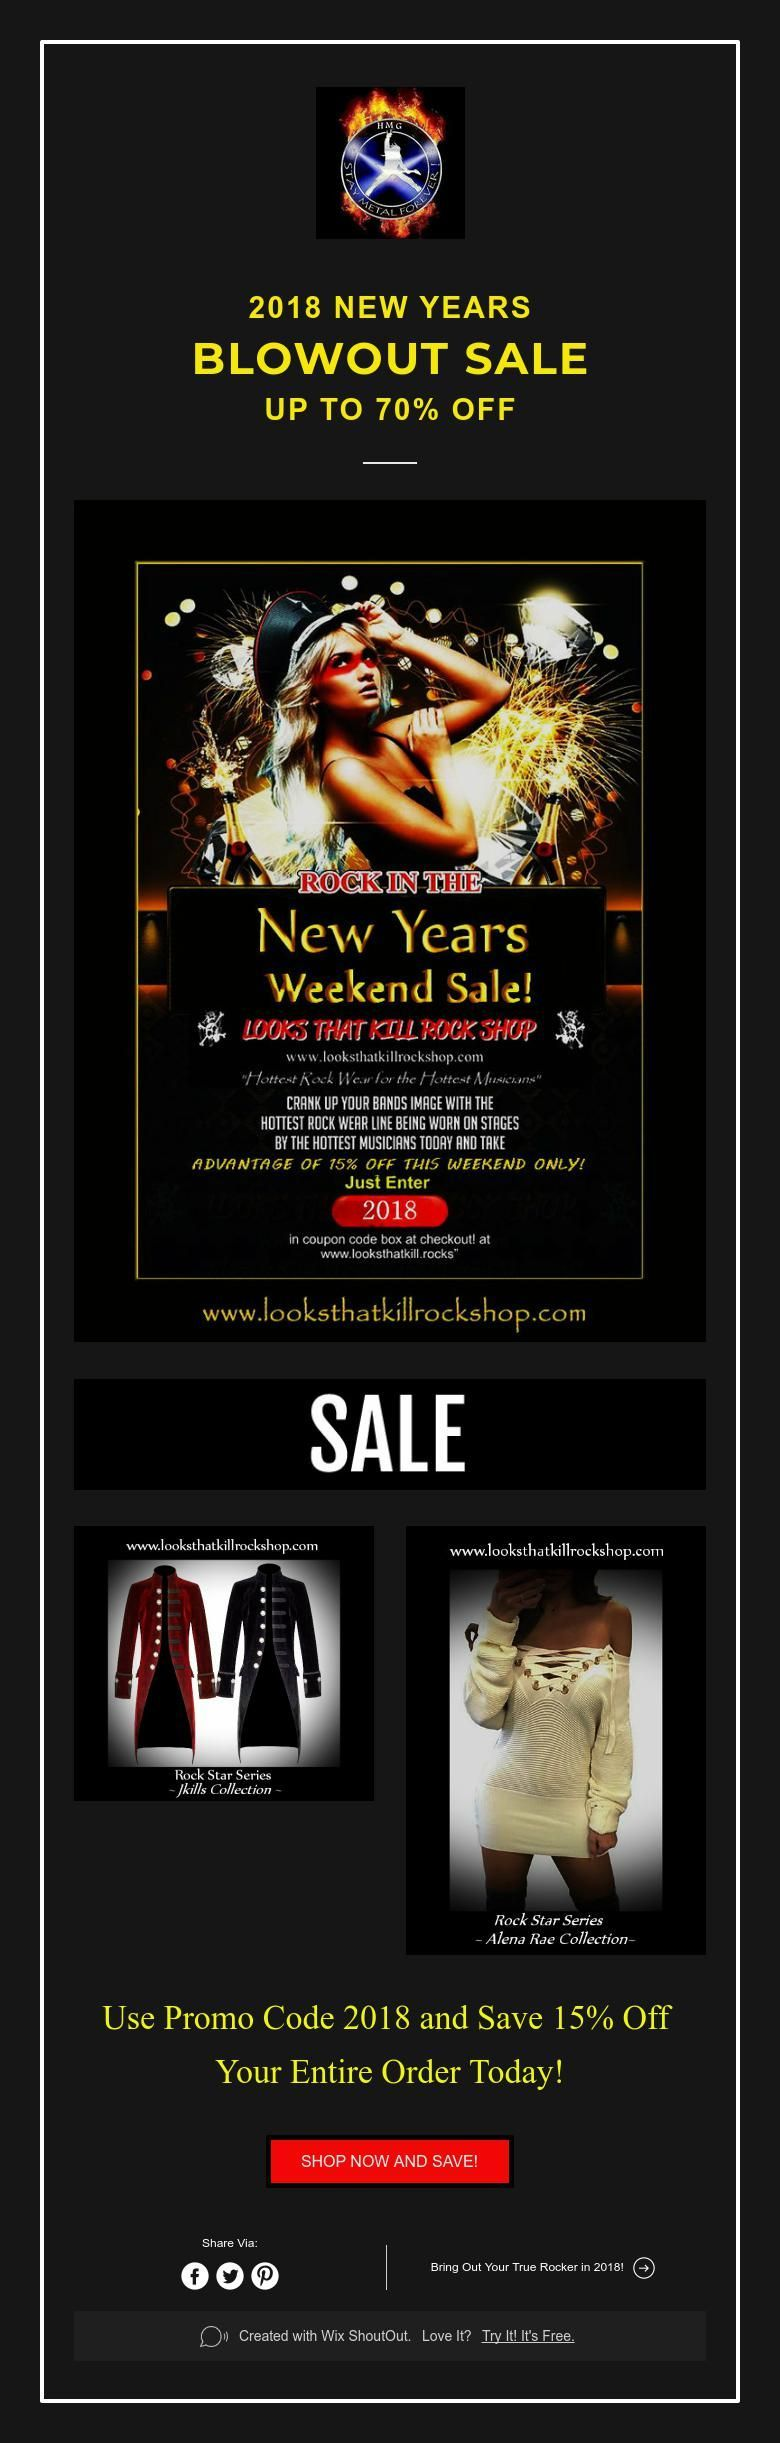 2018 NEW YEARs BLOWOUT SALE up to 70 off Newyear, Promo